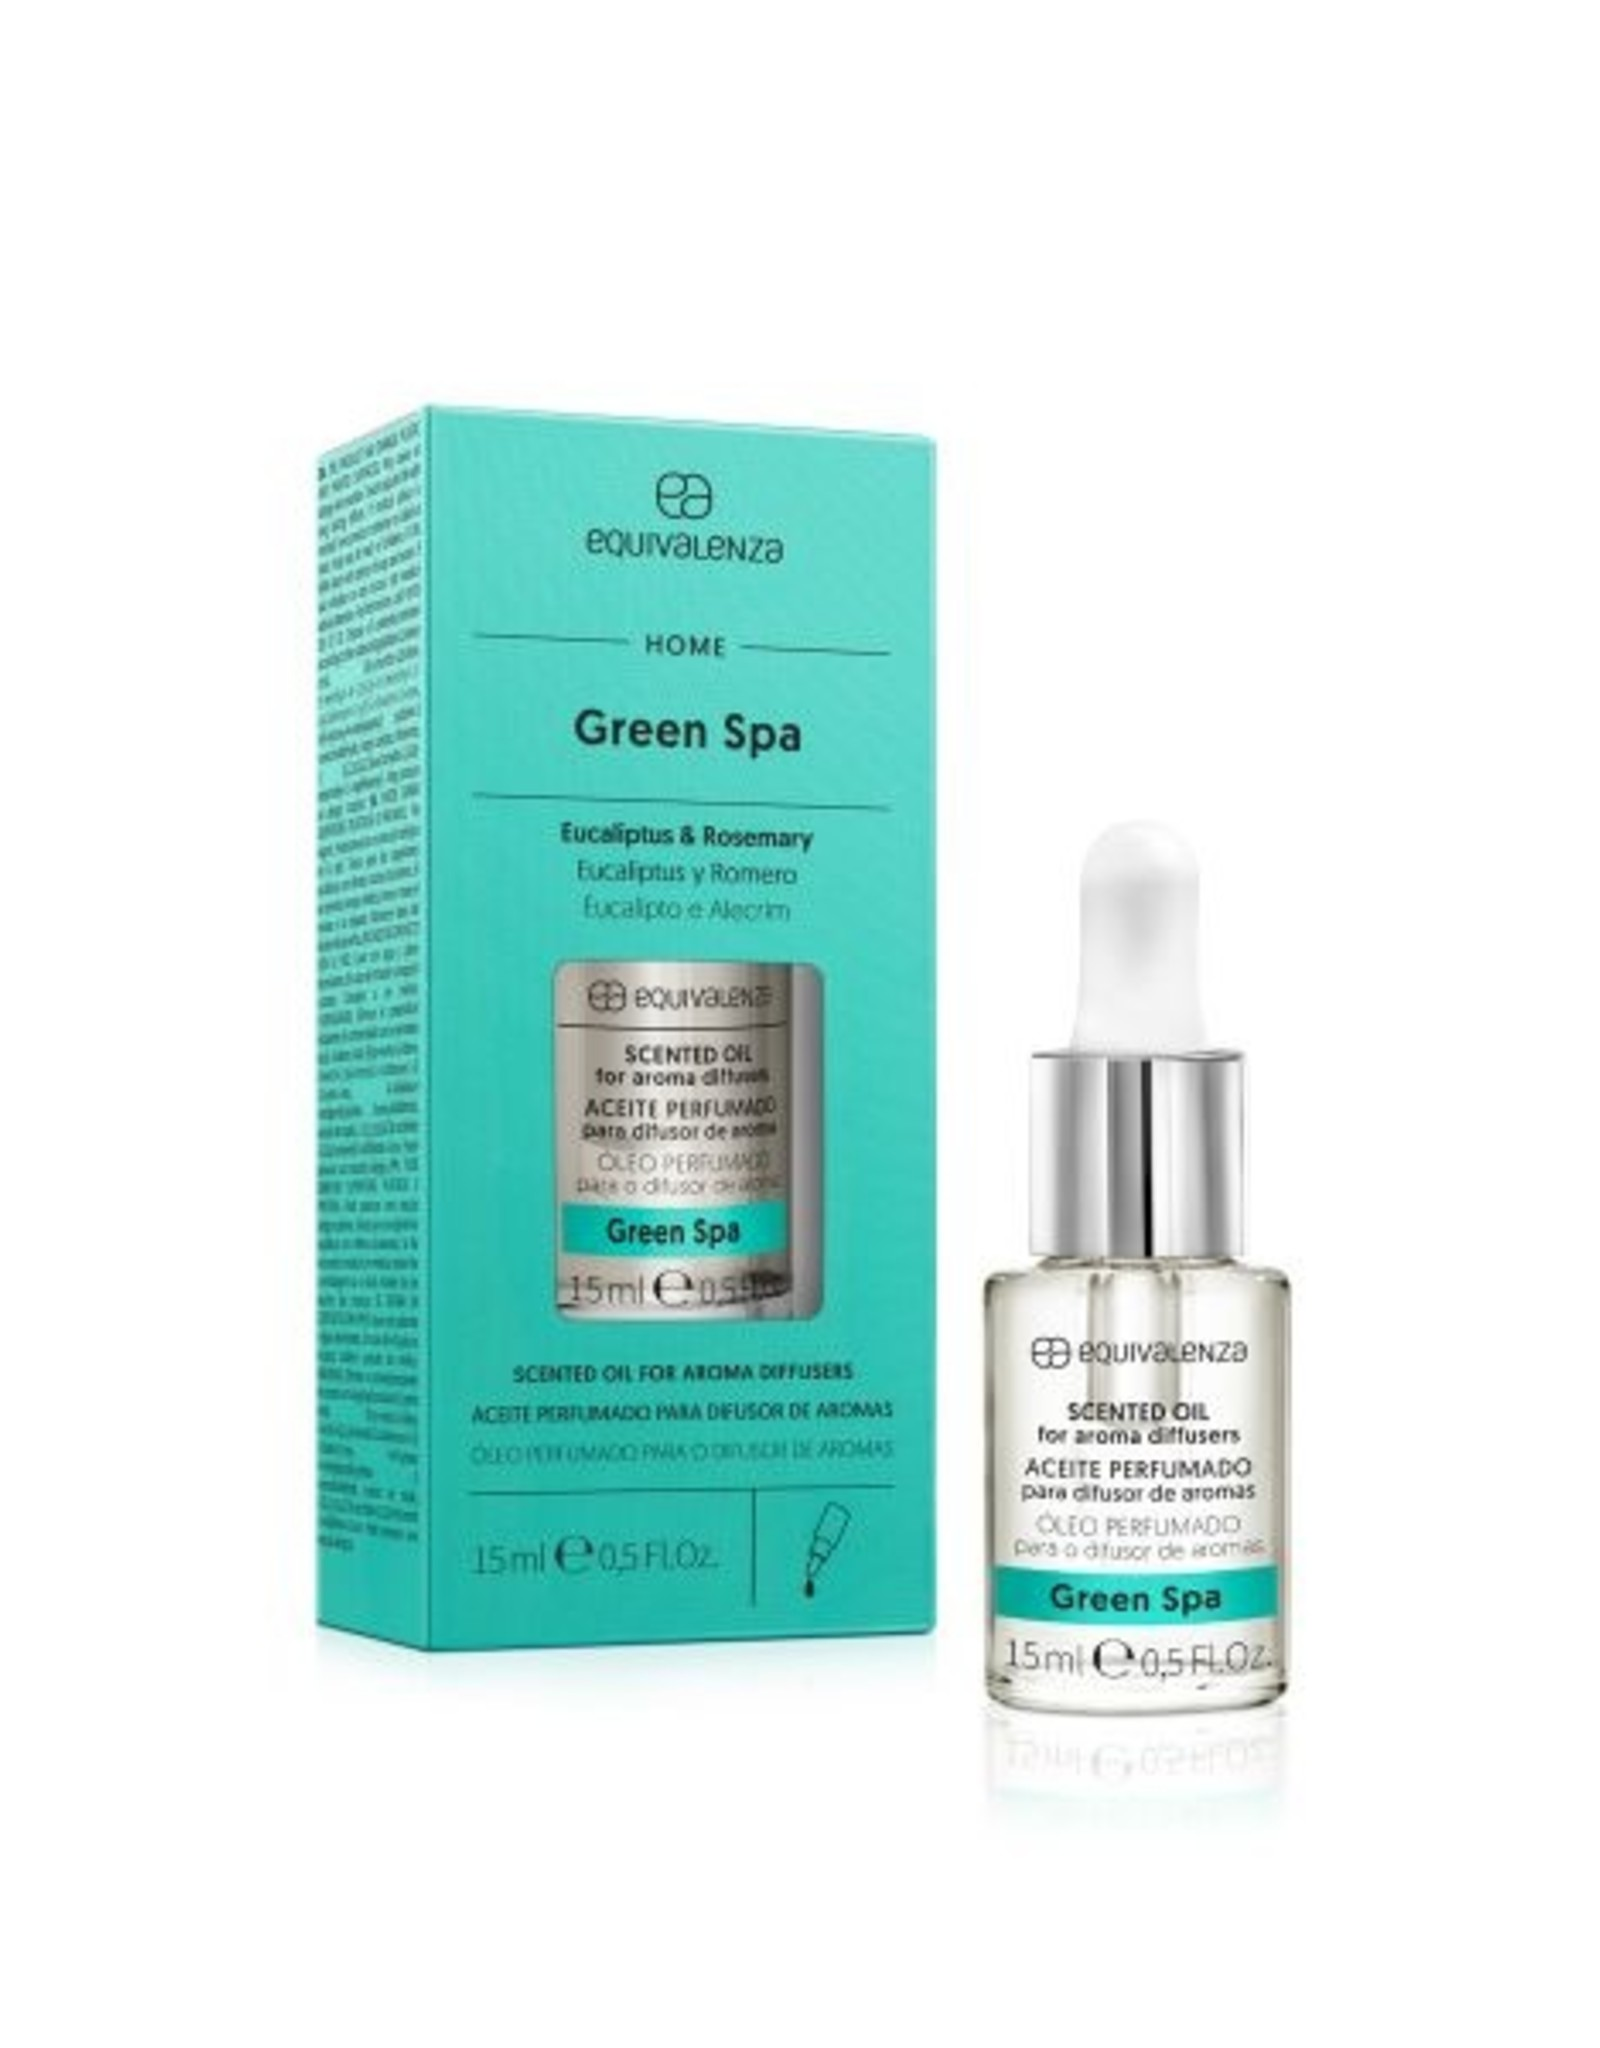 Equivalenza Essential Oil – Green Spa (eucalyptus and rosemary)